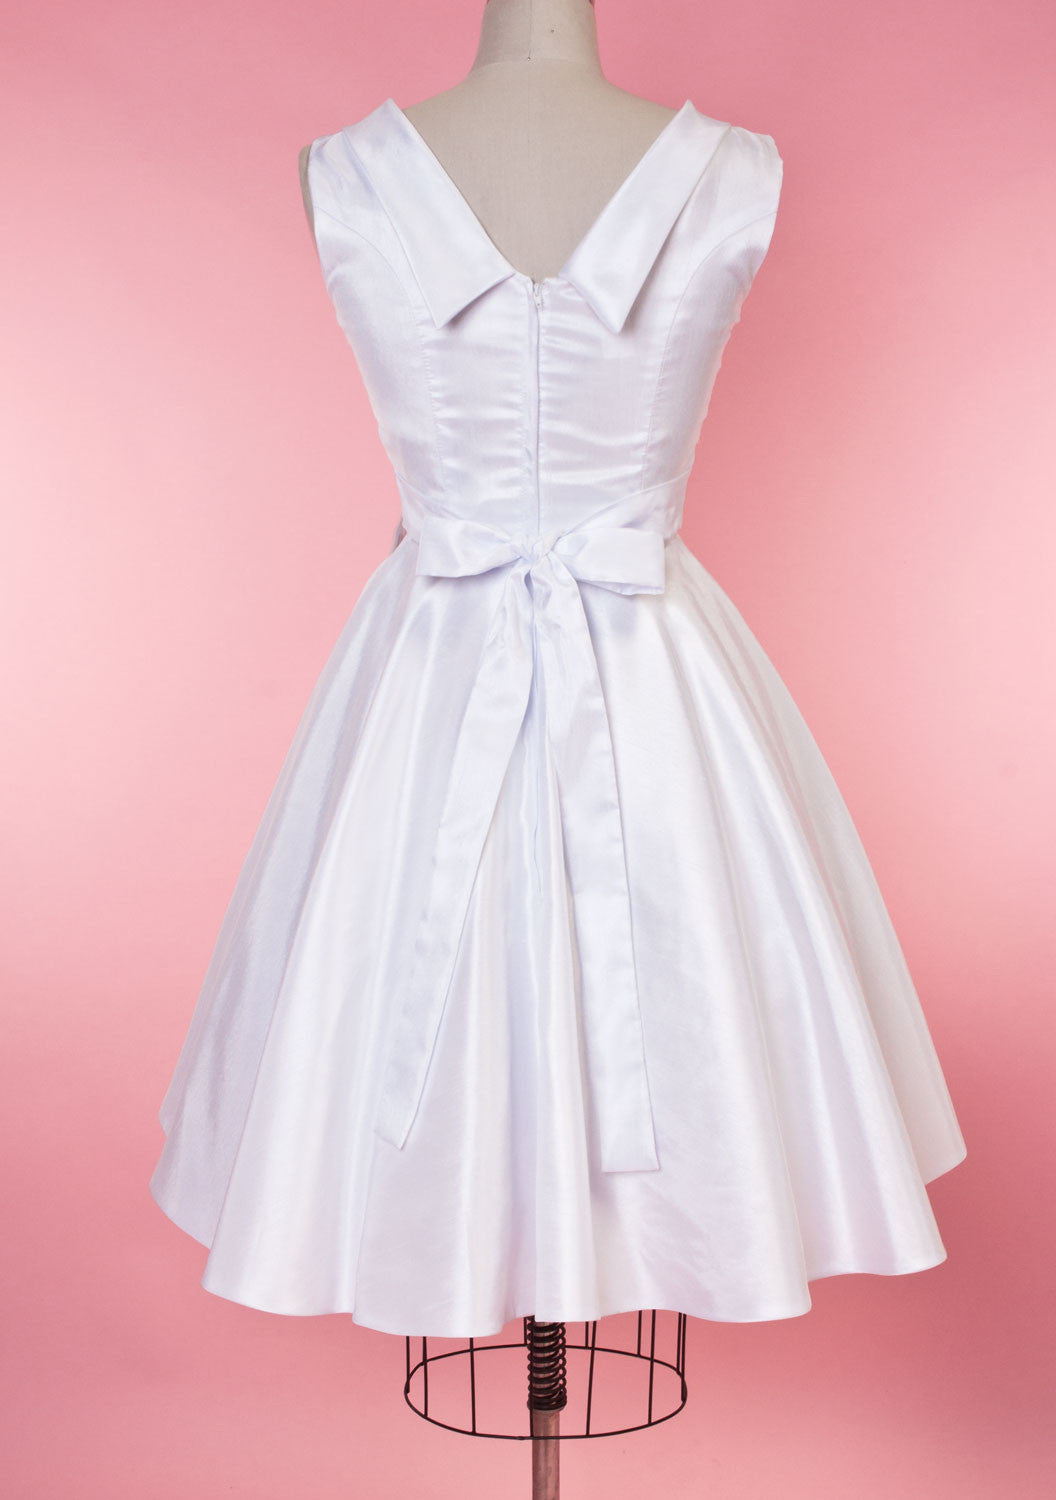 BP Suzette Dress - White Shantung - Heart of Haute  - 6